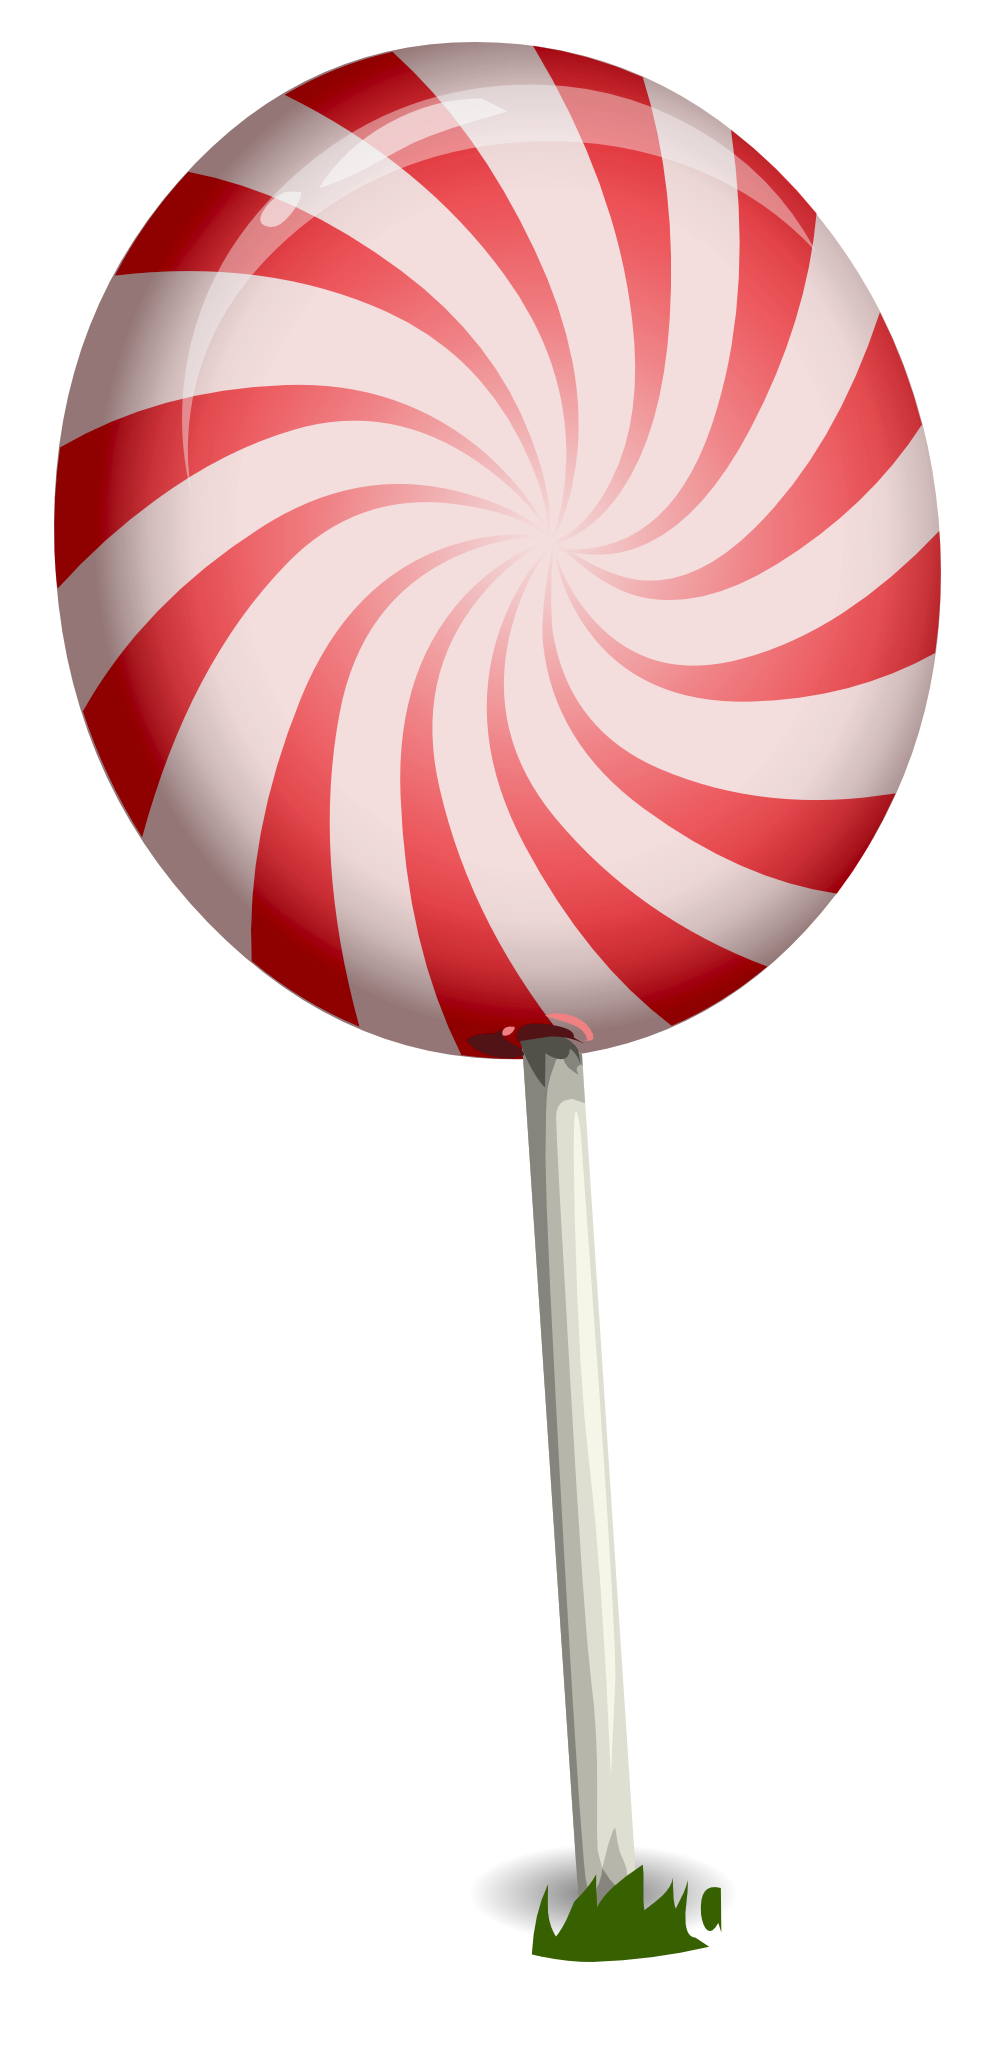 Candy PNG - 24247